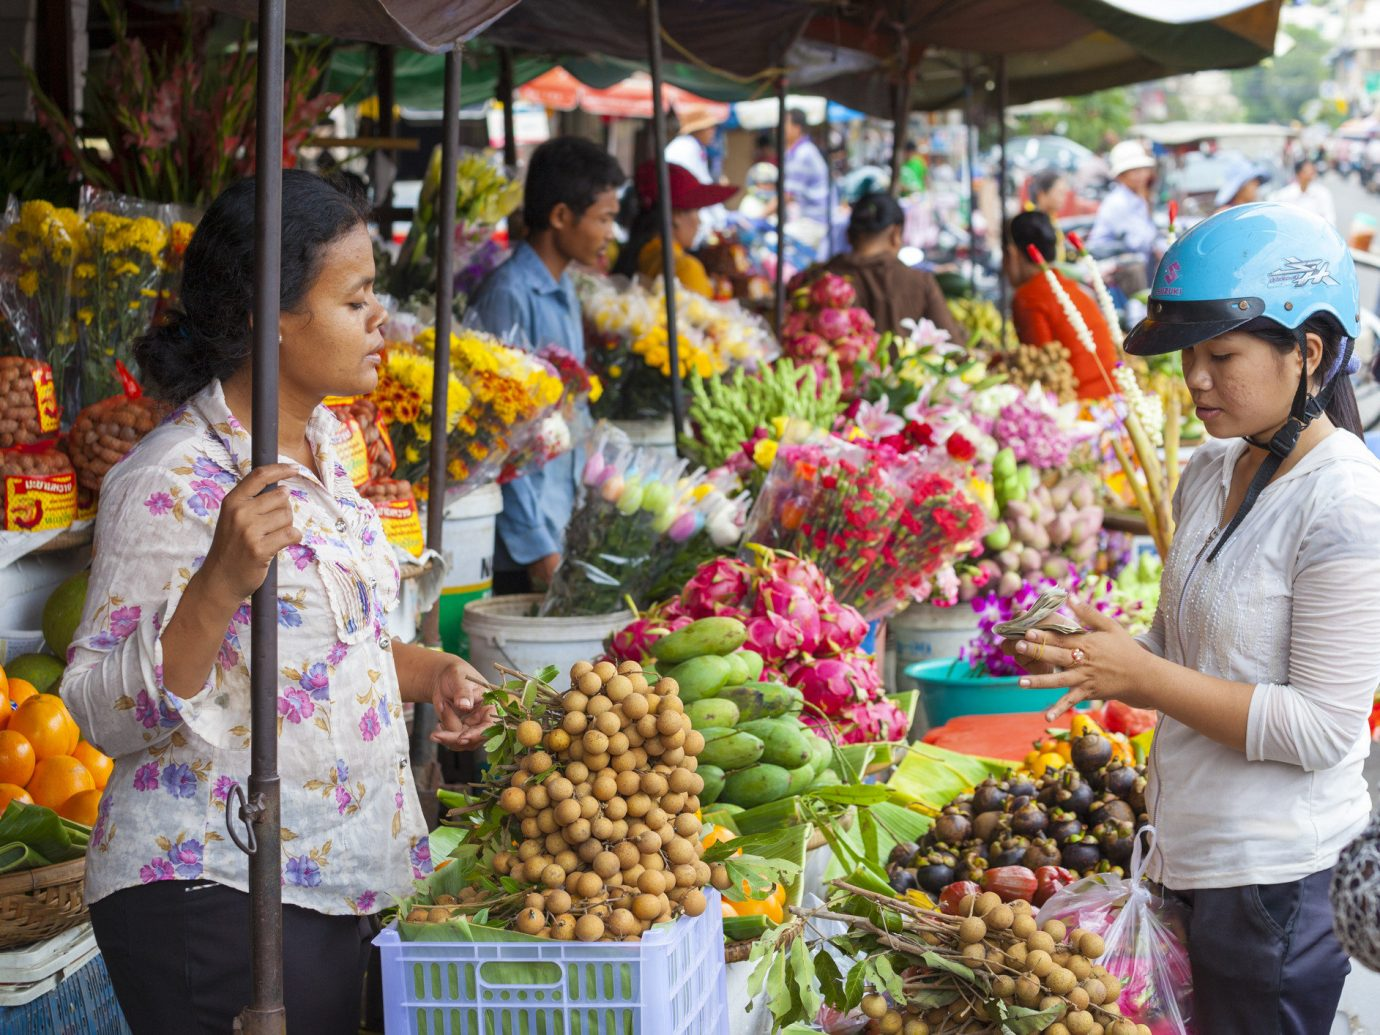 Trip Ideas Winter person marketplace produce market fruit outdoor vendor food local food public space yellow scene bazaar vegetable greengrocer selling stall natural foods City people plant floristry hawker fresh shopkeeper grocer sale